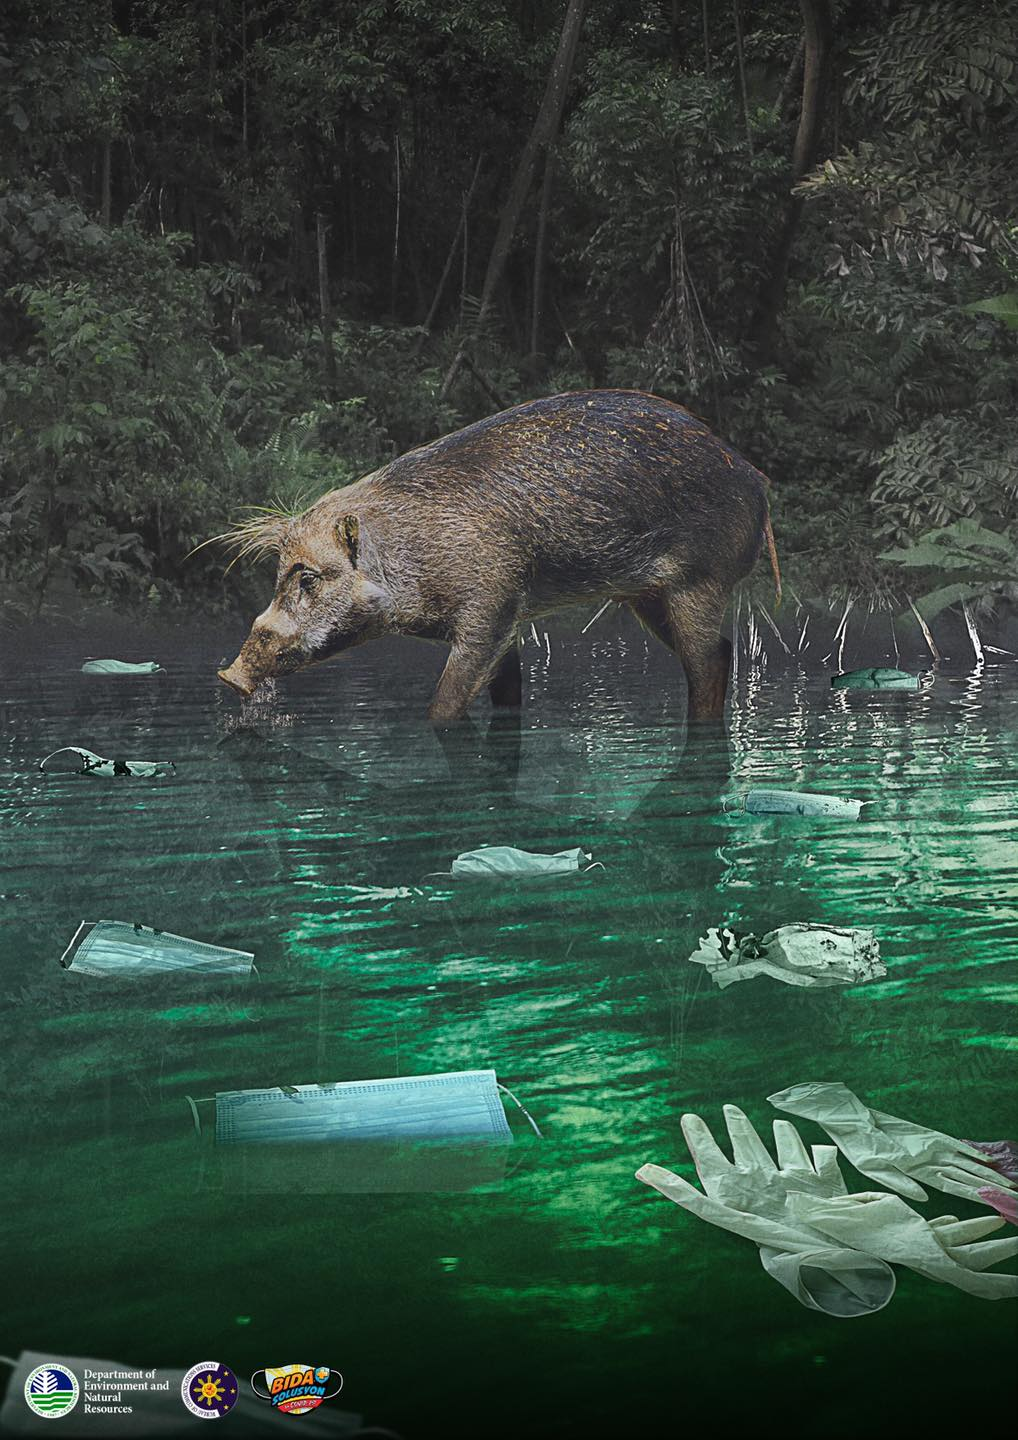 wild boar in river drinking with face masks and medical wastes